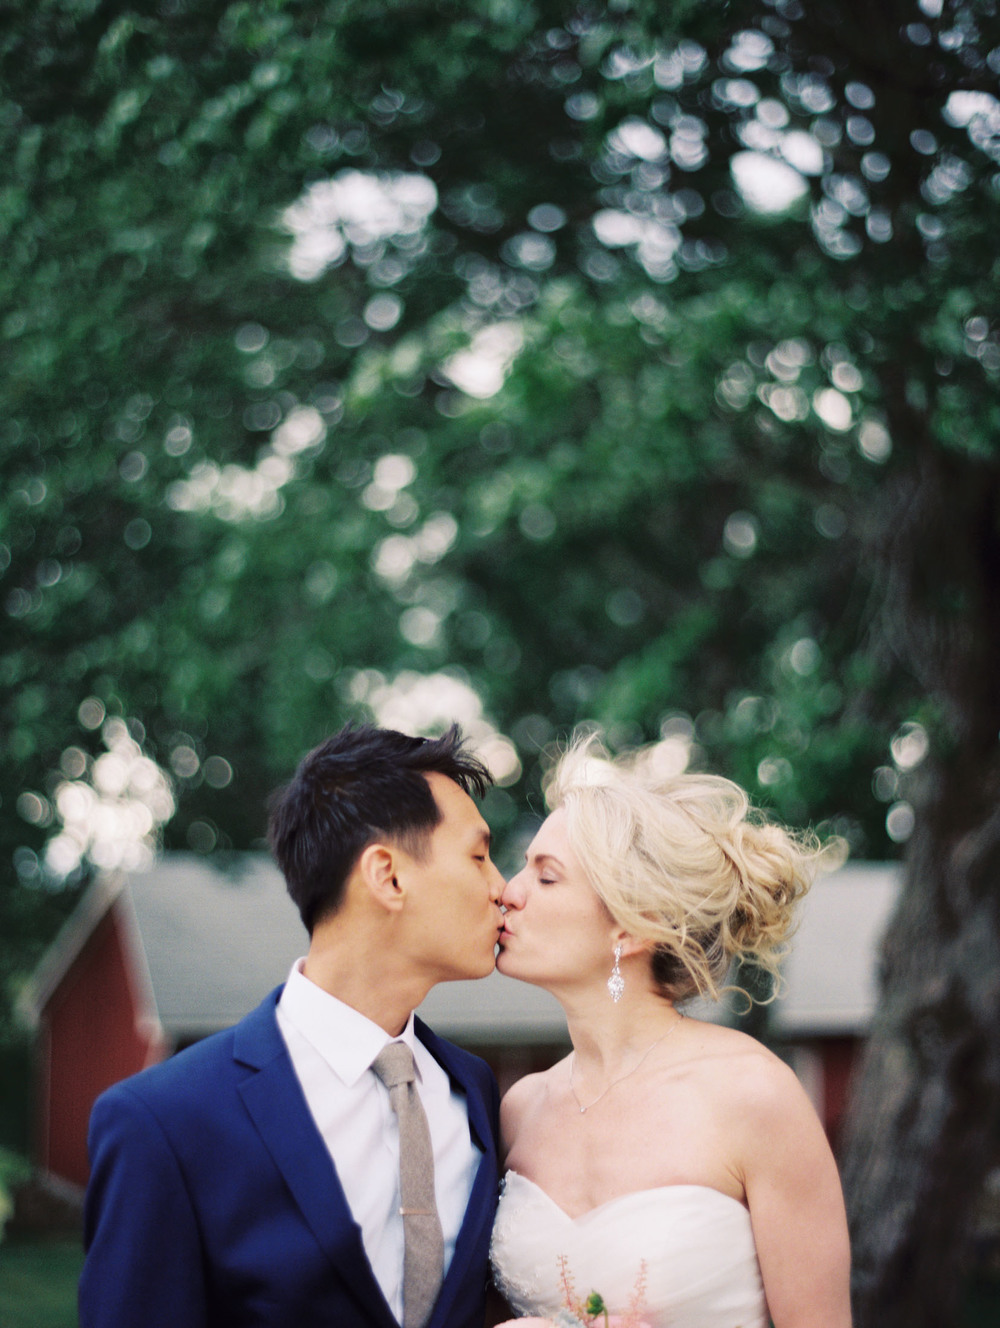 Blissful-Meadows-wedding-15.jpg